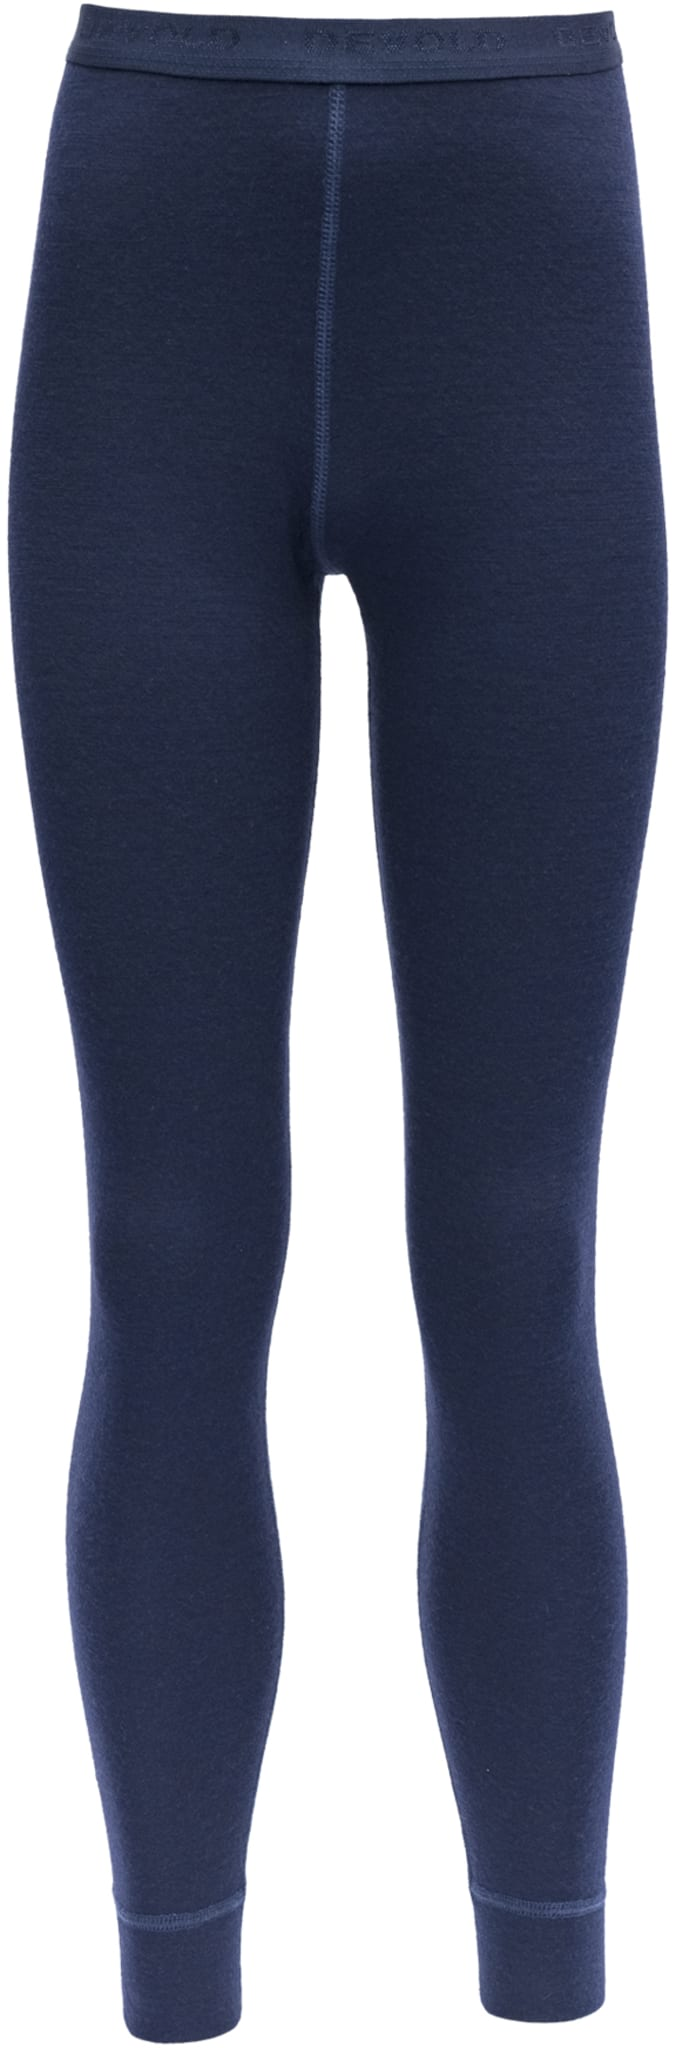 Duo Active Long Johns Junior